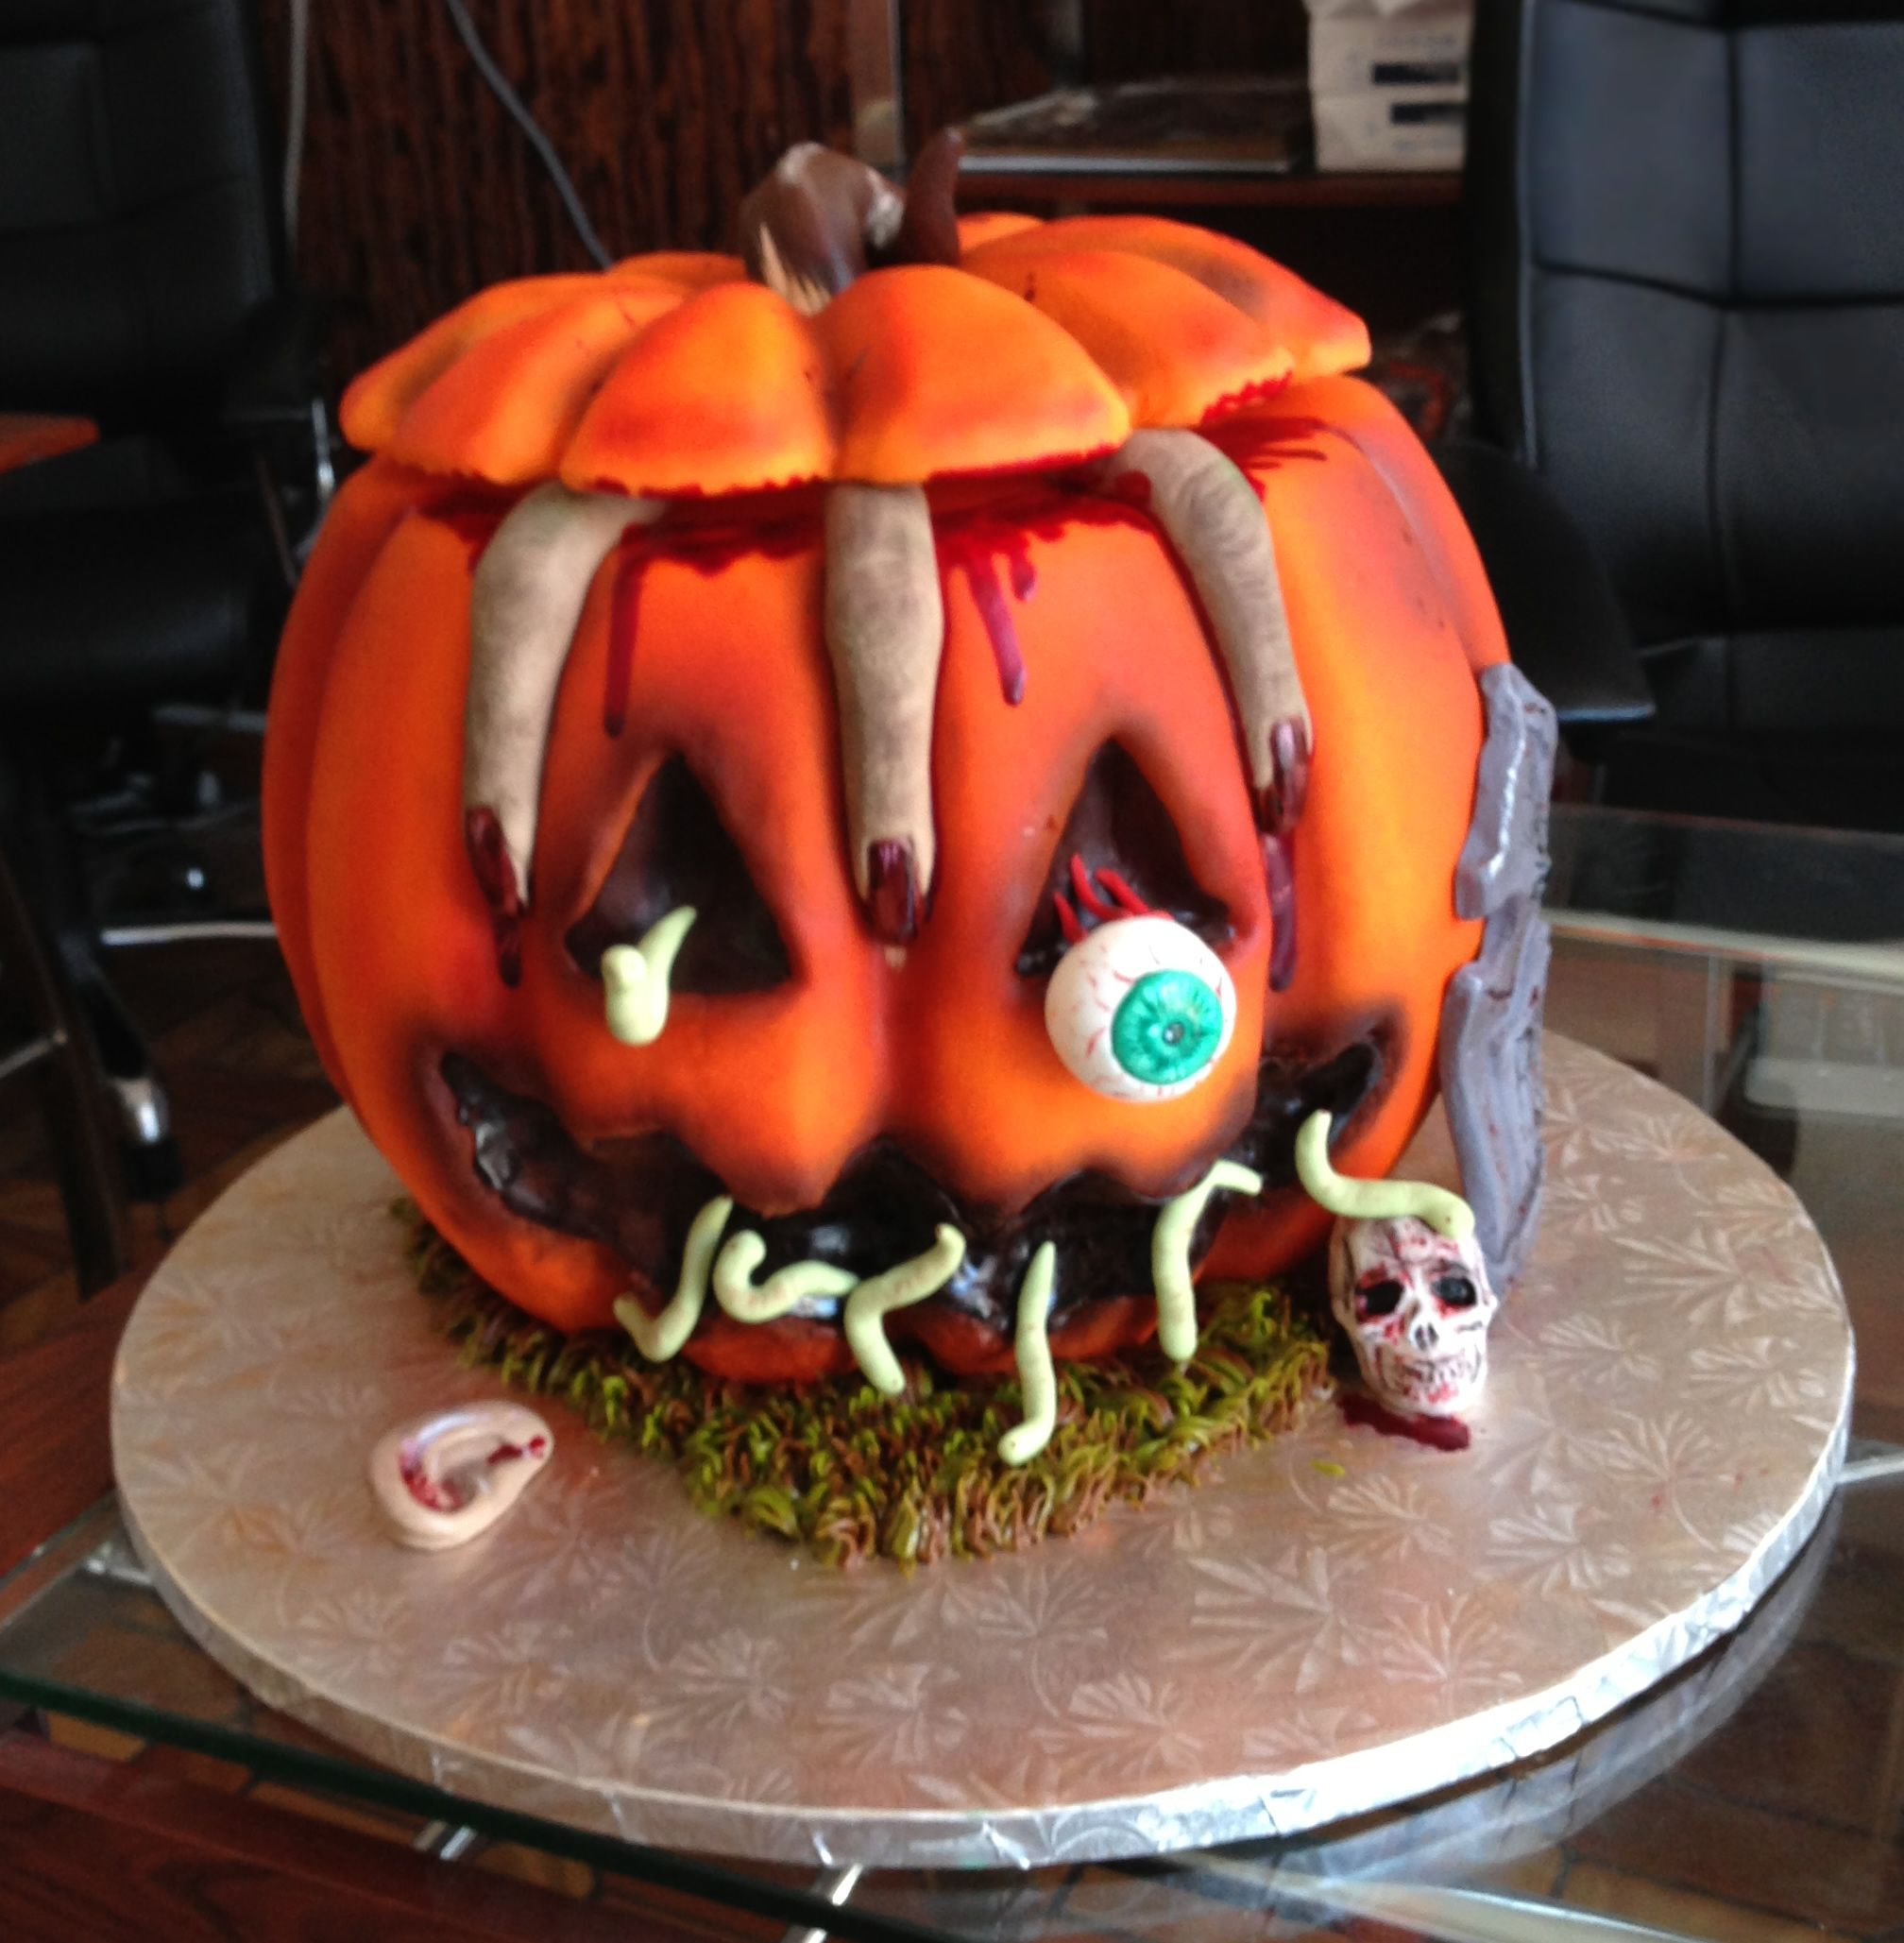 explore scary halloween cakes halloween goodies and more - Halloween Scary Desserts